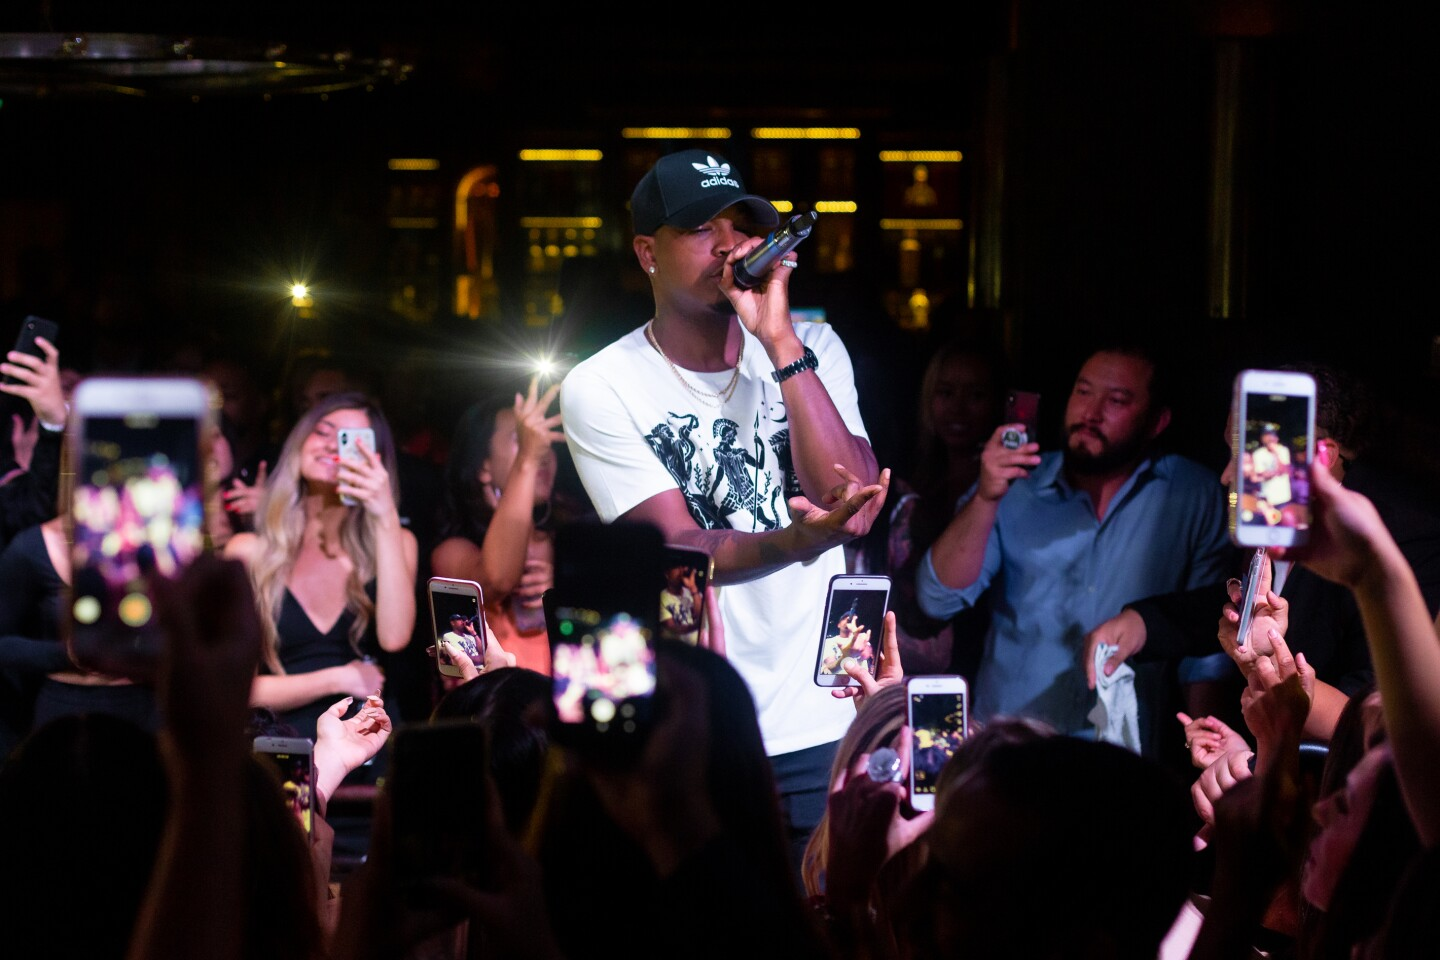 Ne-Yo mixed and mingled with the crowd during an appearance at Oxford Social Club on Friday, Aug. 23, 2019.